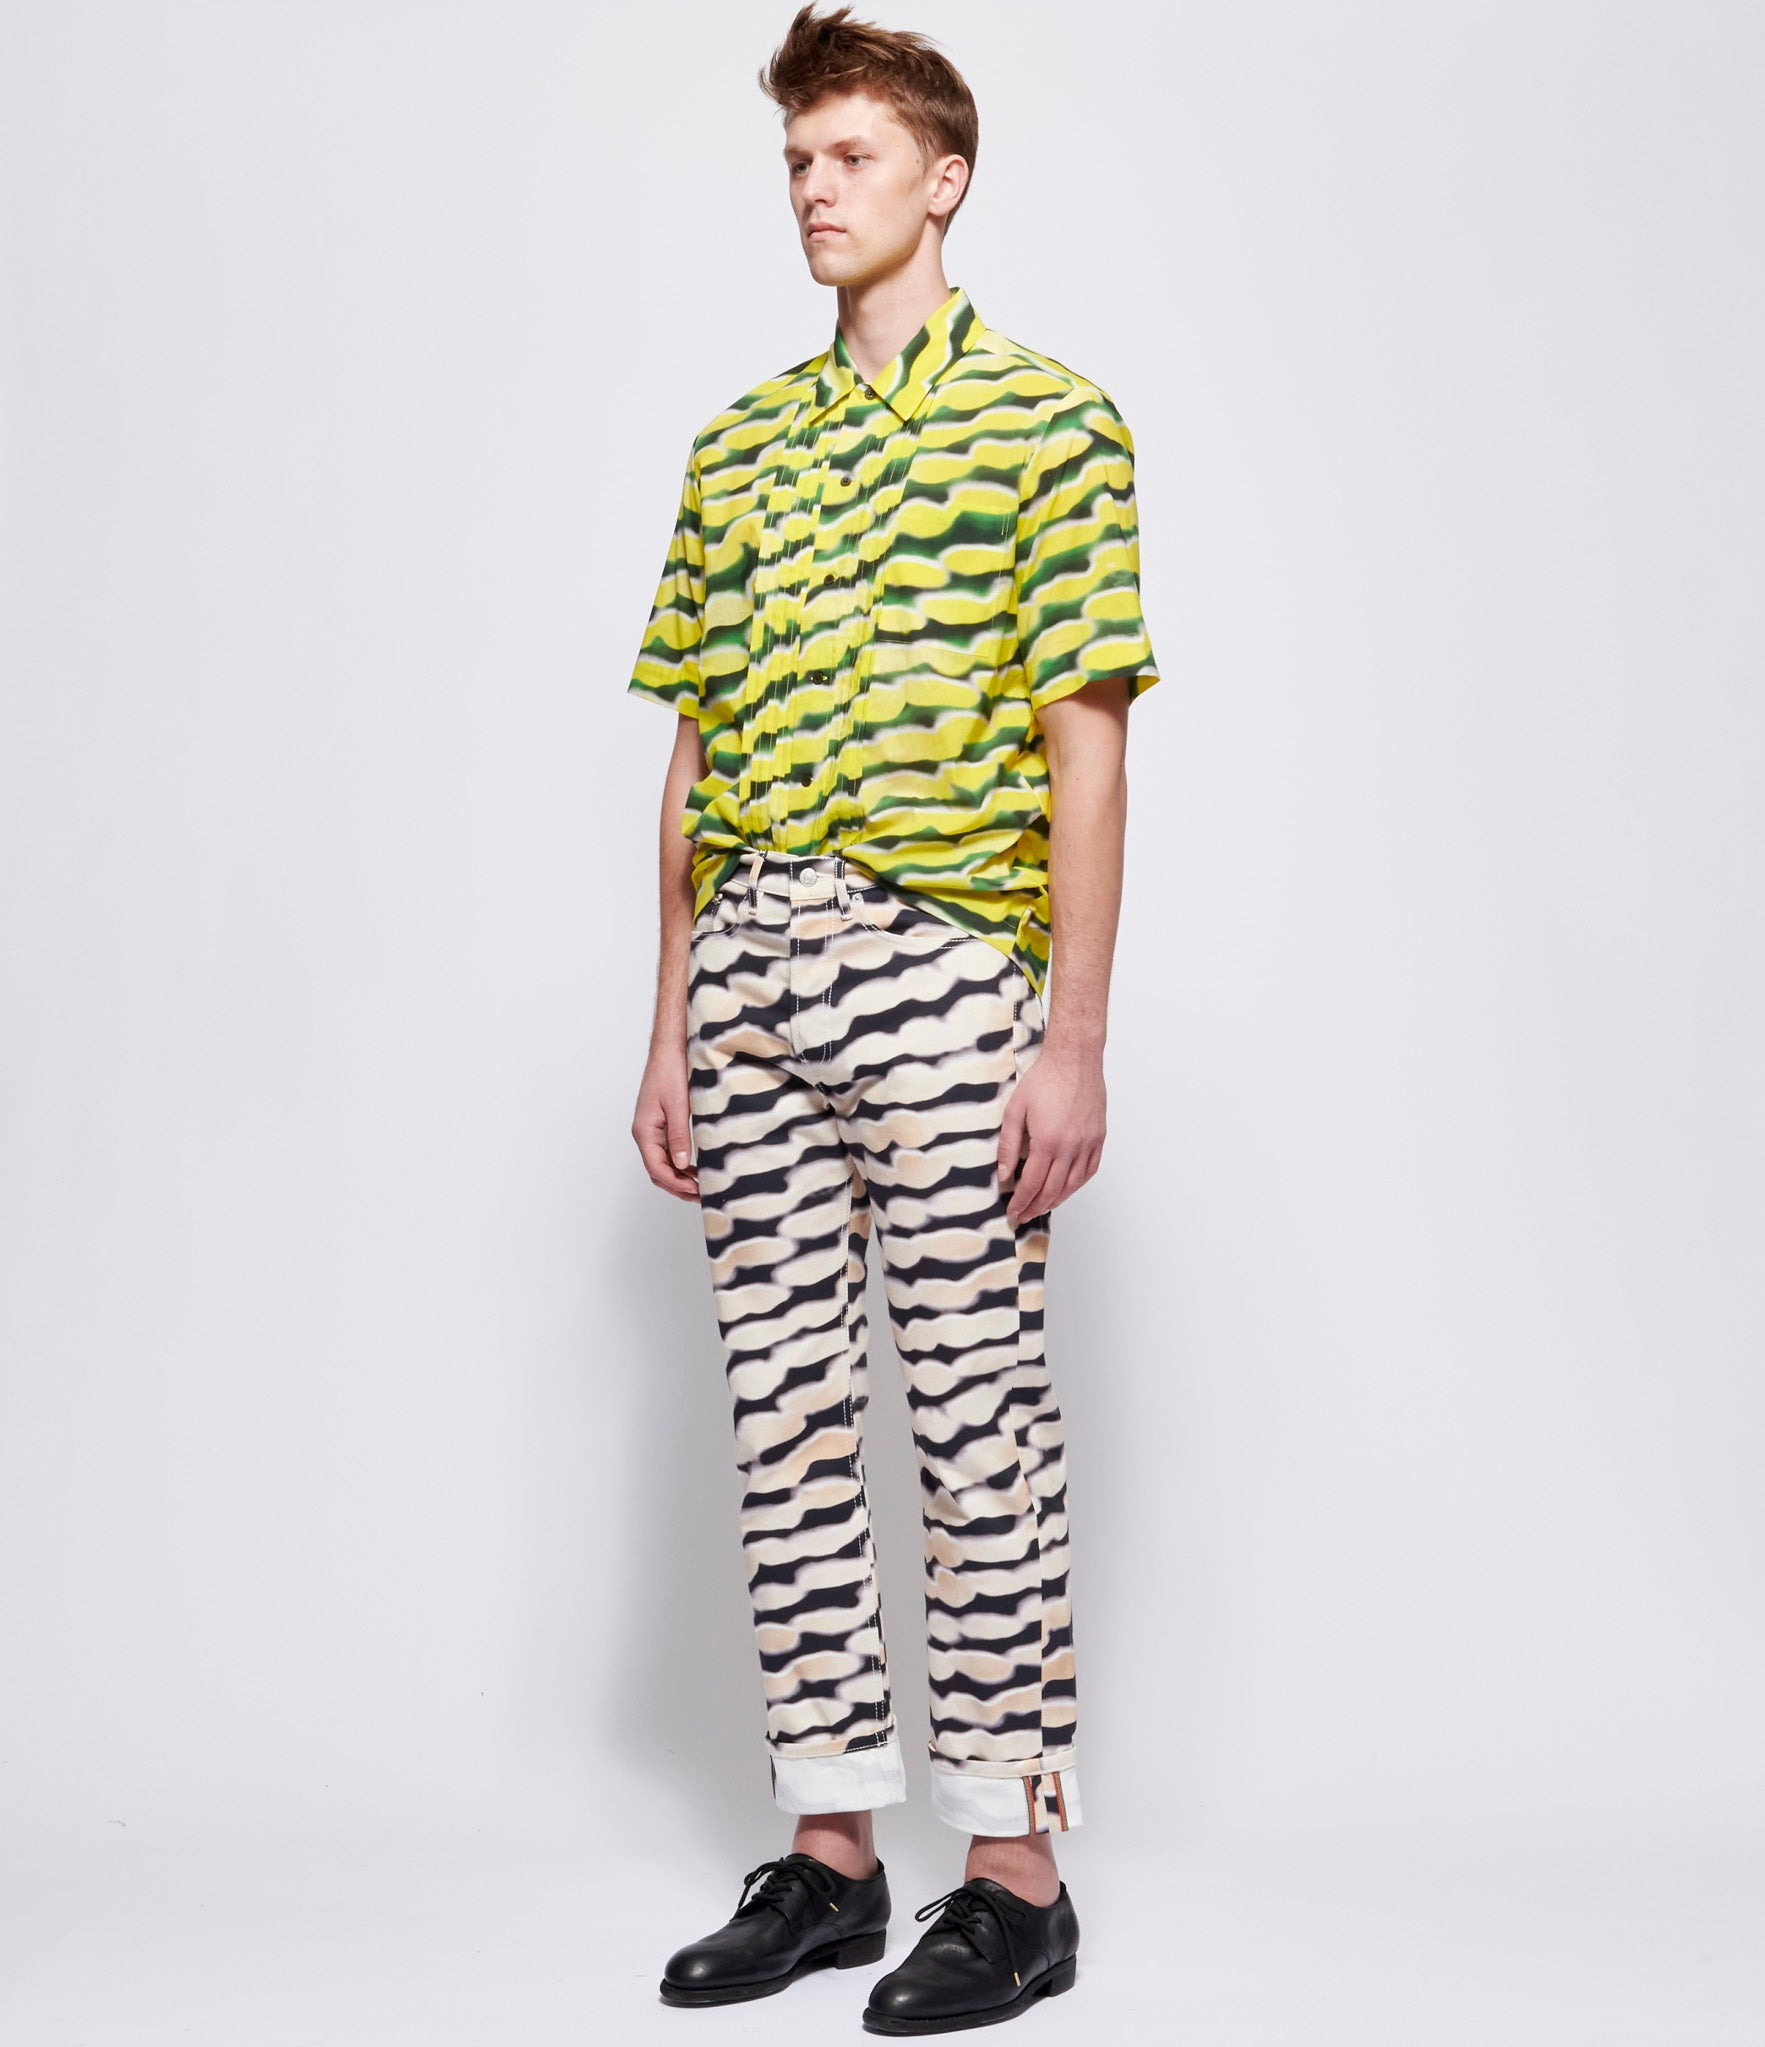 Dries Van Noten Penna Pants